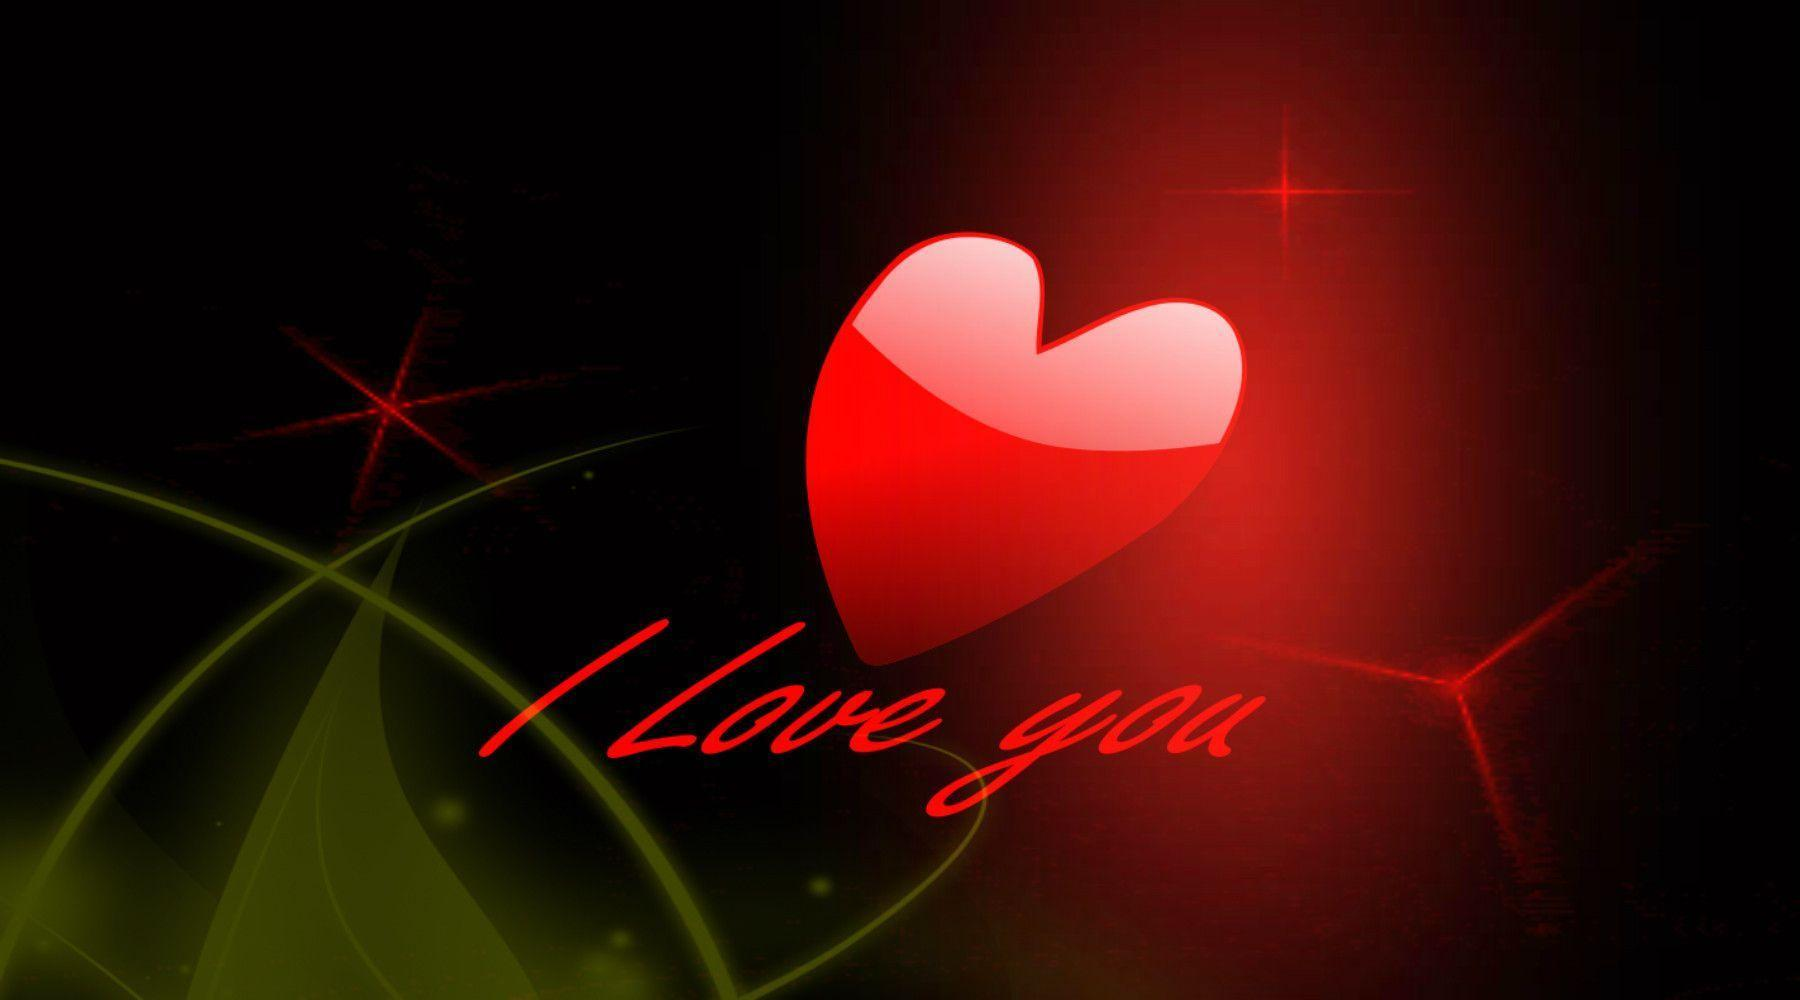 Wallpaper I Love You 3d : I Love You Wallpapers - Wallpaper cave